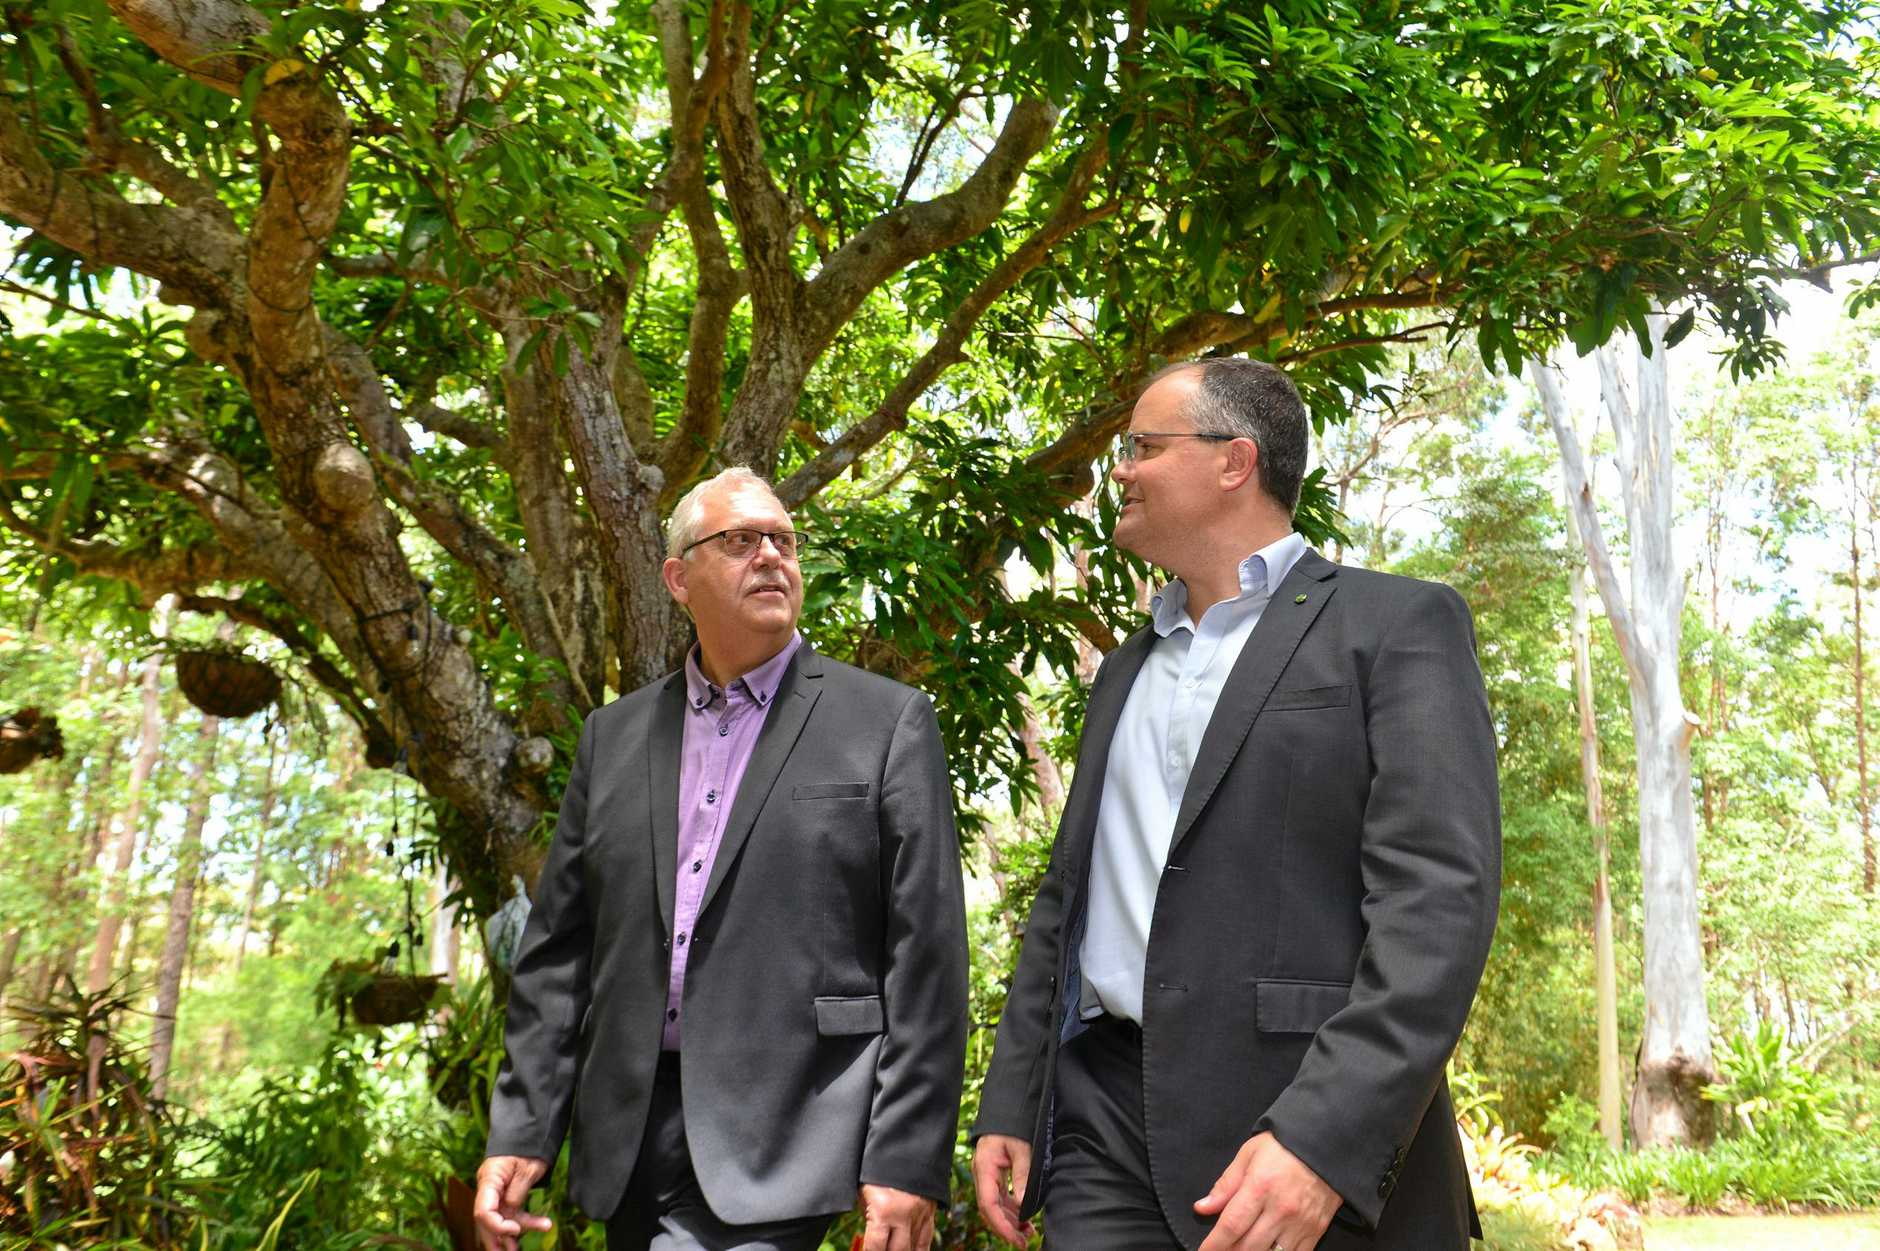 CEO Chris Franck and Ted O'Brien  at Bloomhill Cancer Charity in Buderim discuss the need for funding to help the facility survive.